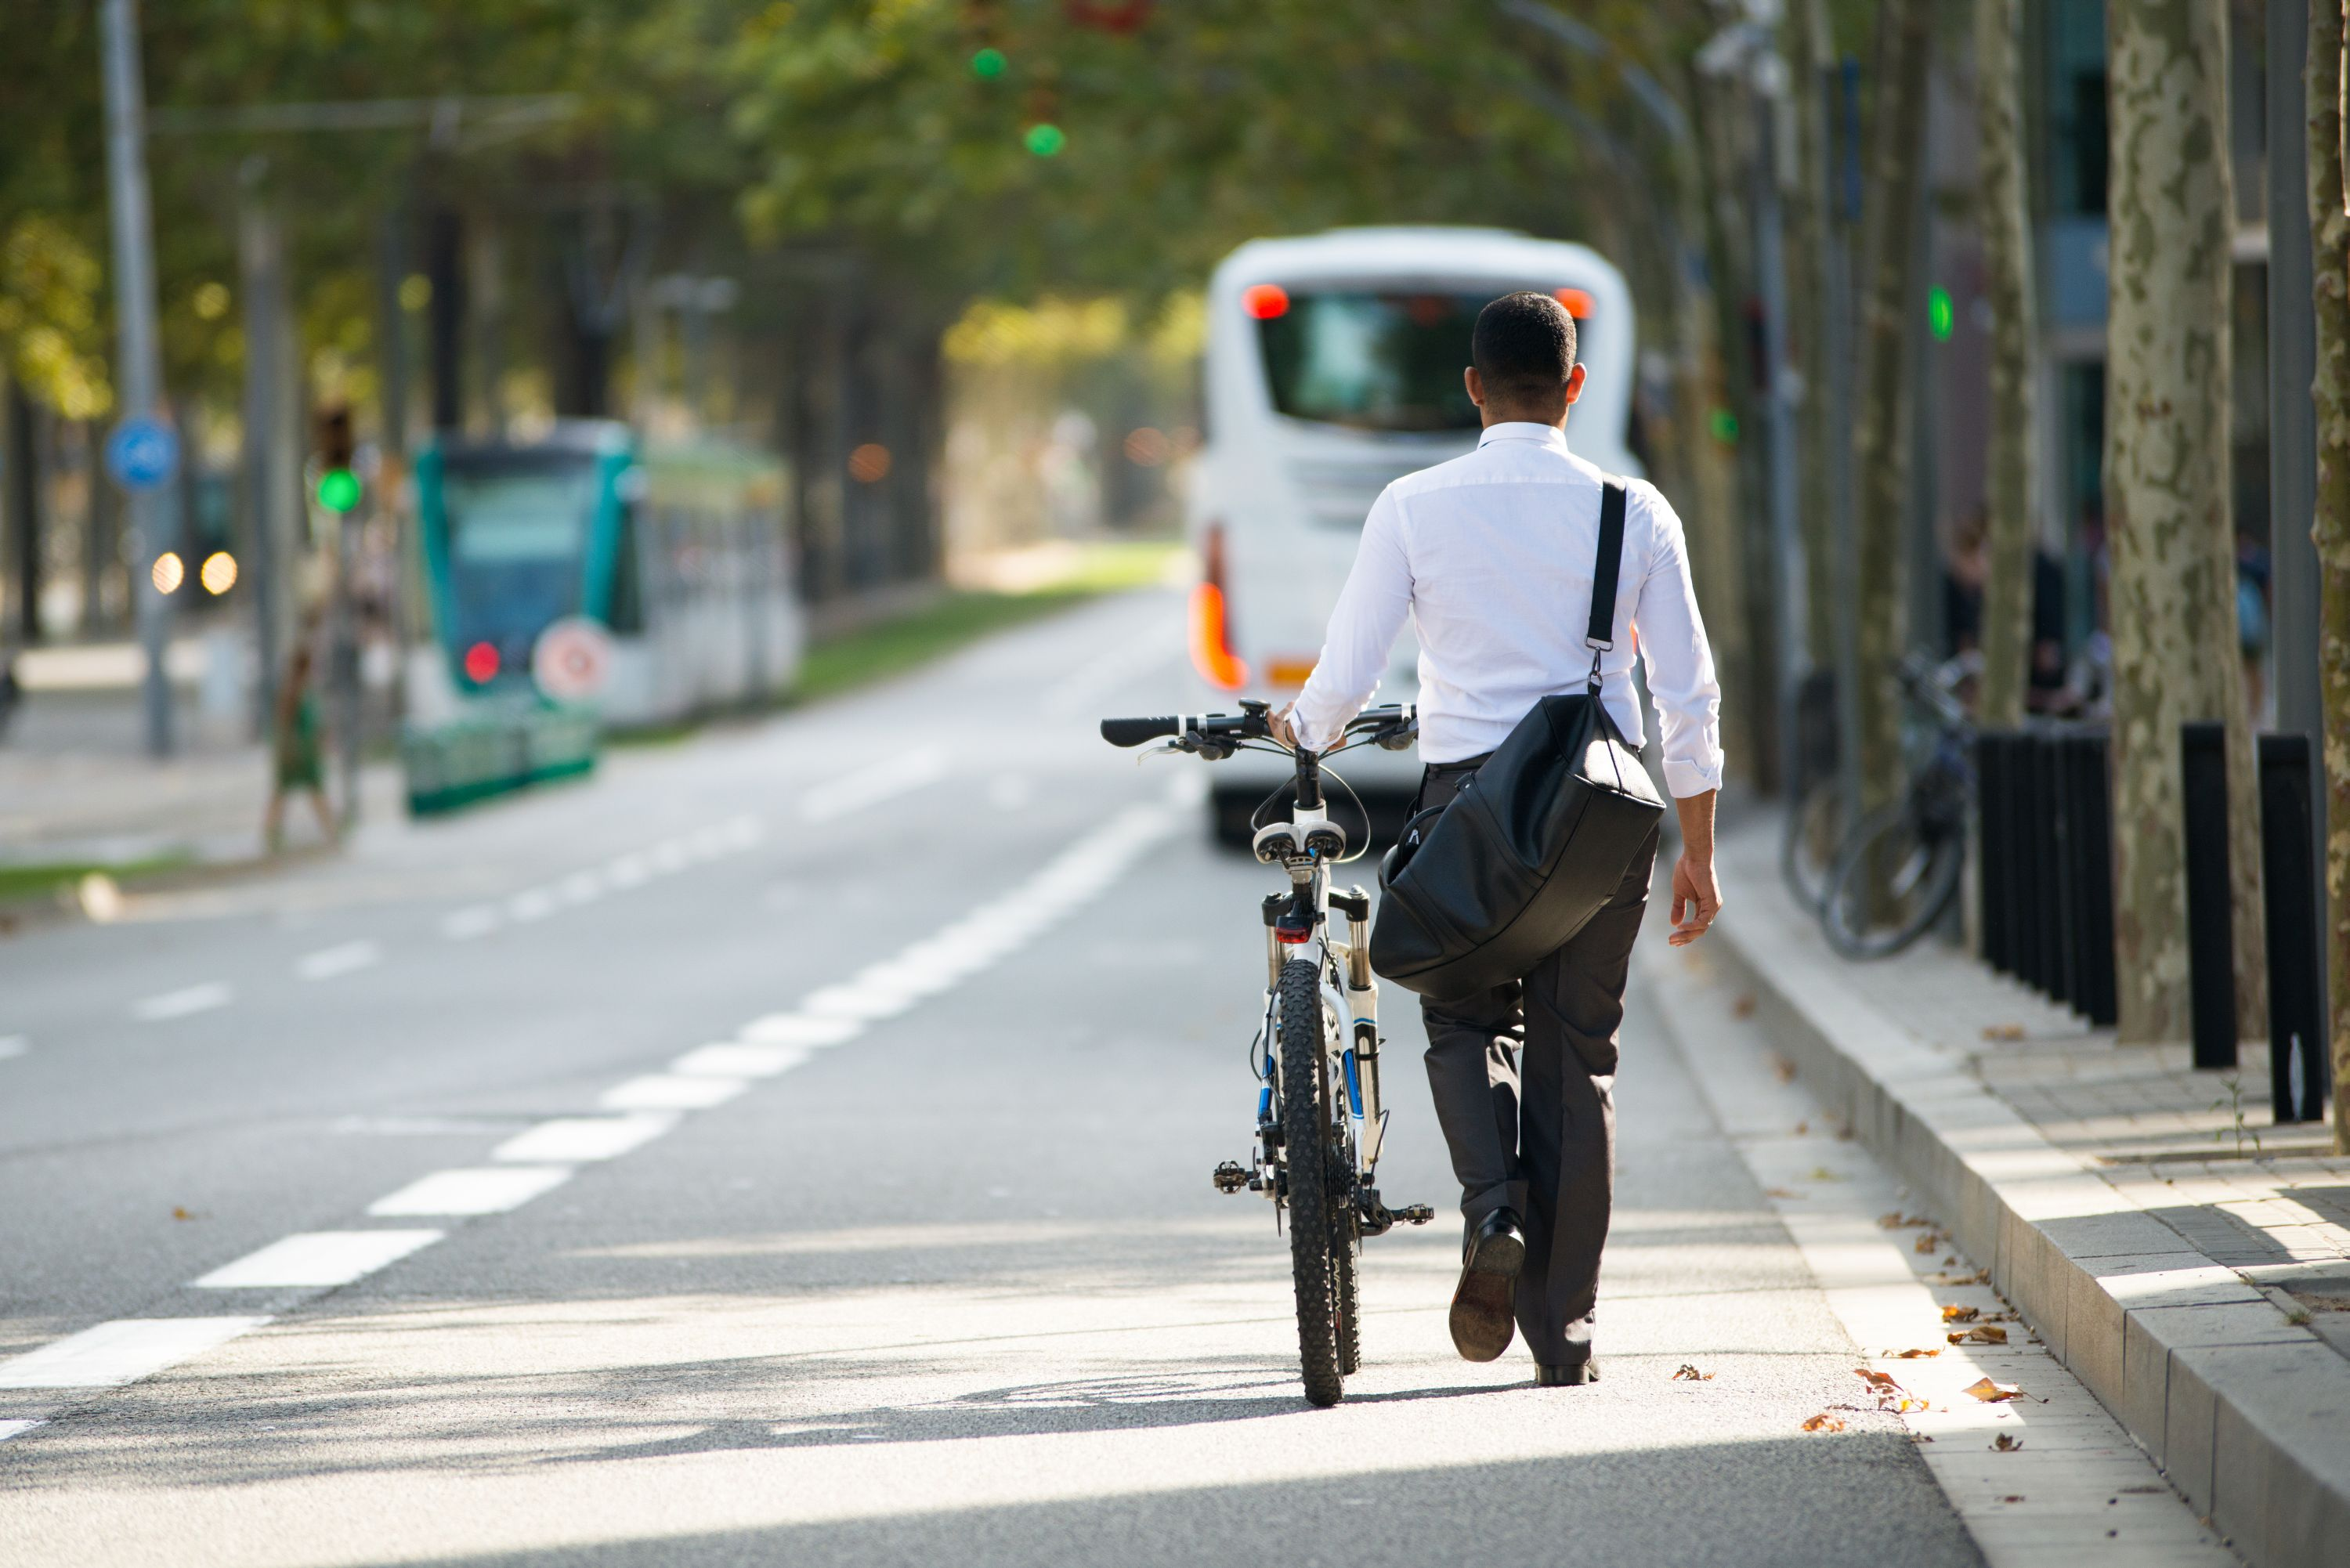 Back view of businessman walking with shoulder bag and bike in street. Young male office employee going after work. Lifestyle concept